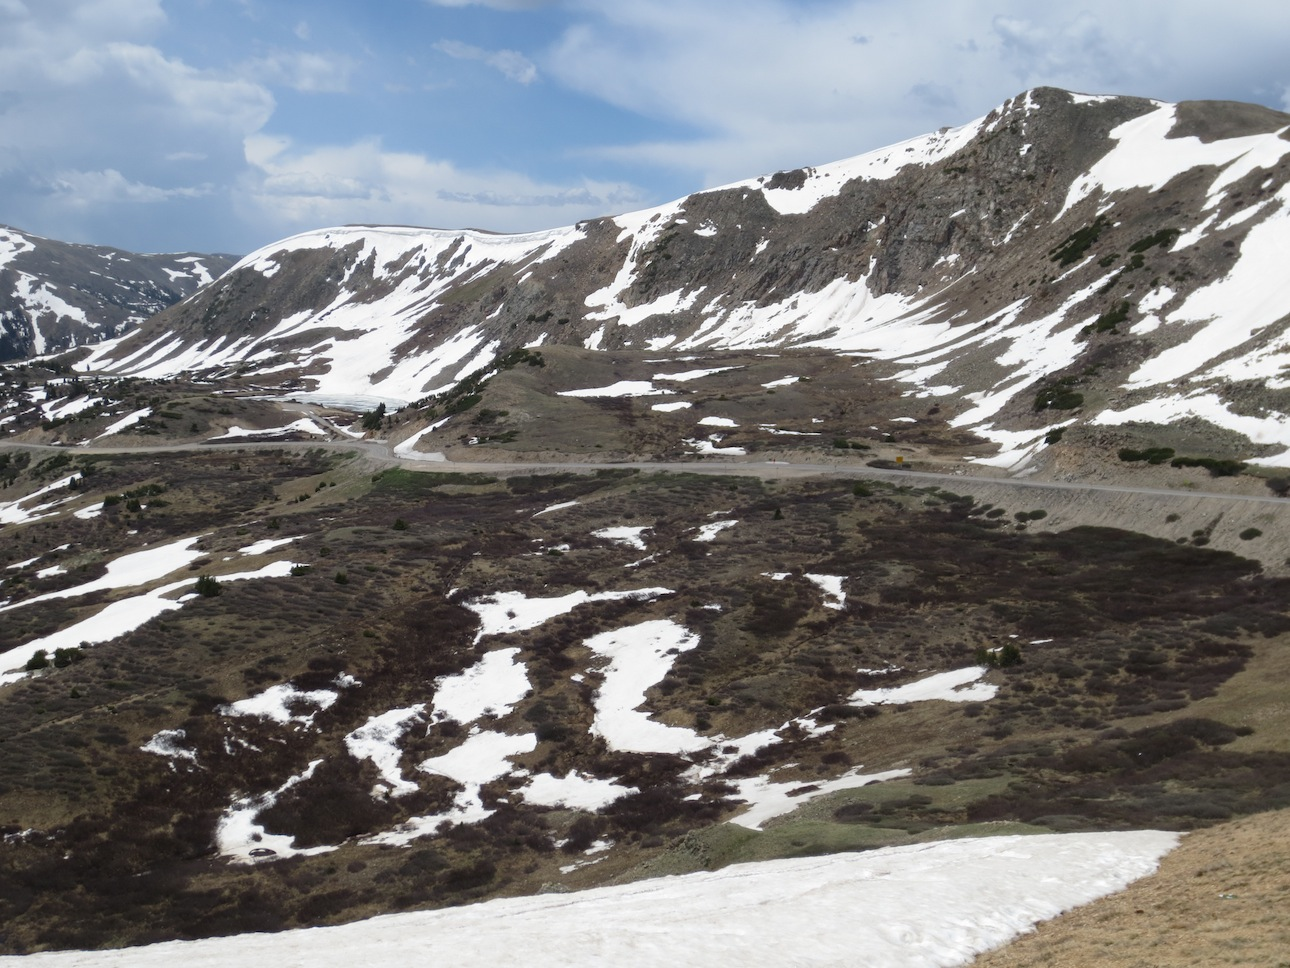 Another shot of the Winding road out of Loveland Pass.